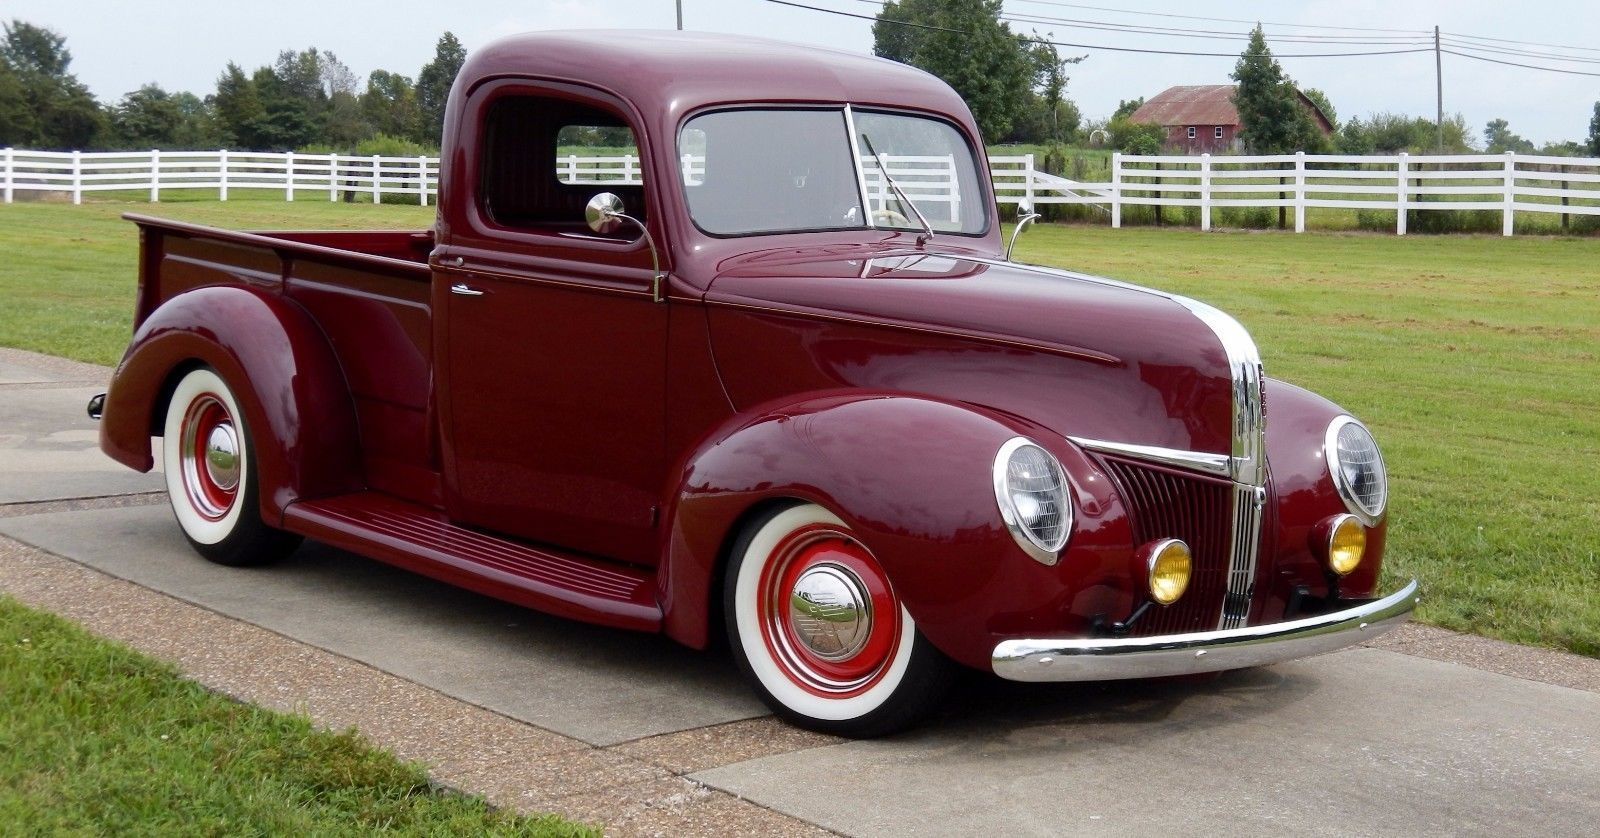 Awesome great 1940 ford truck 1941 ford truck street rod resto mod all new